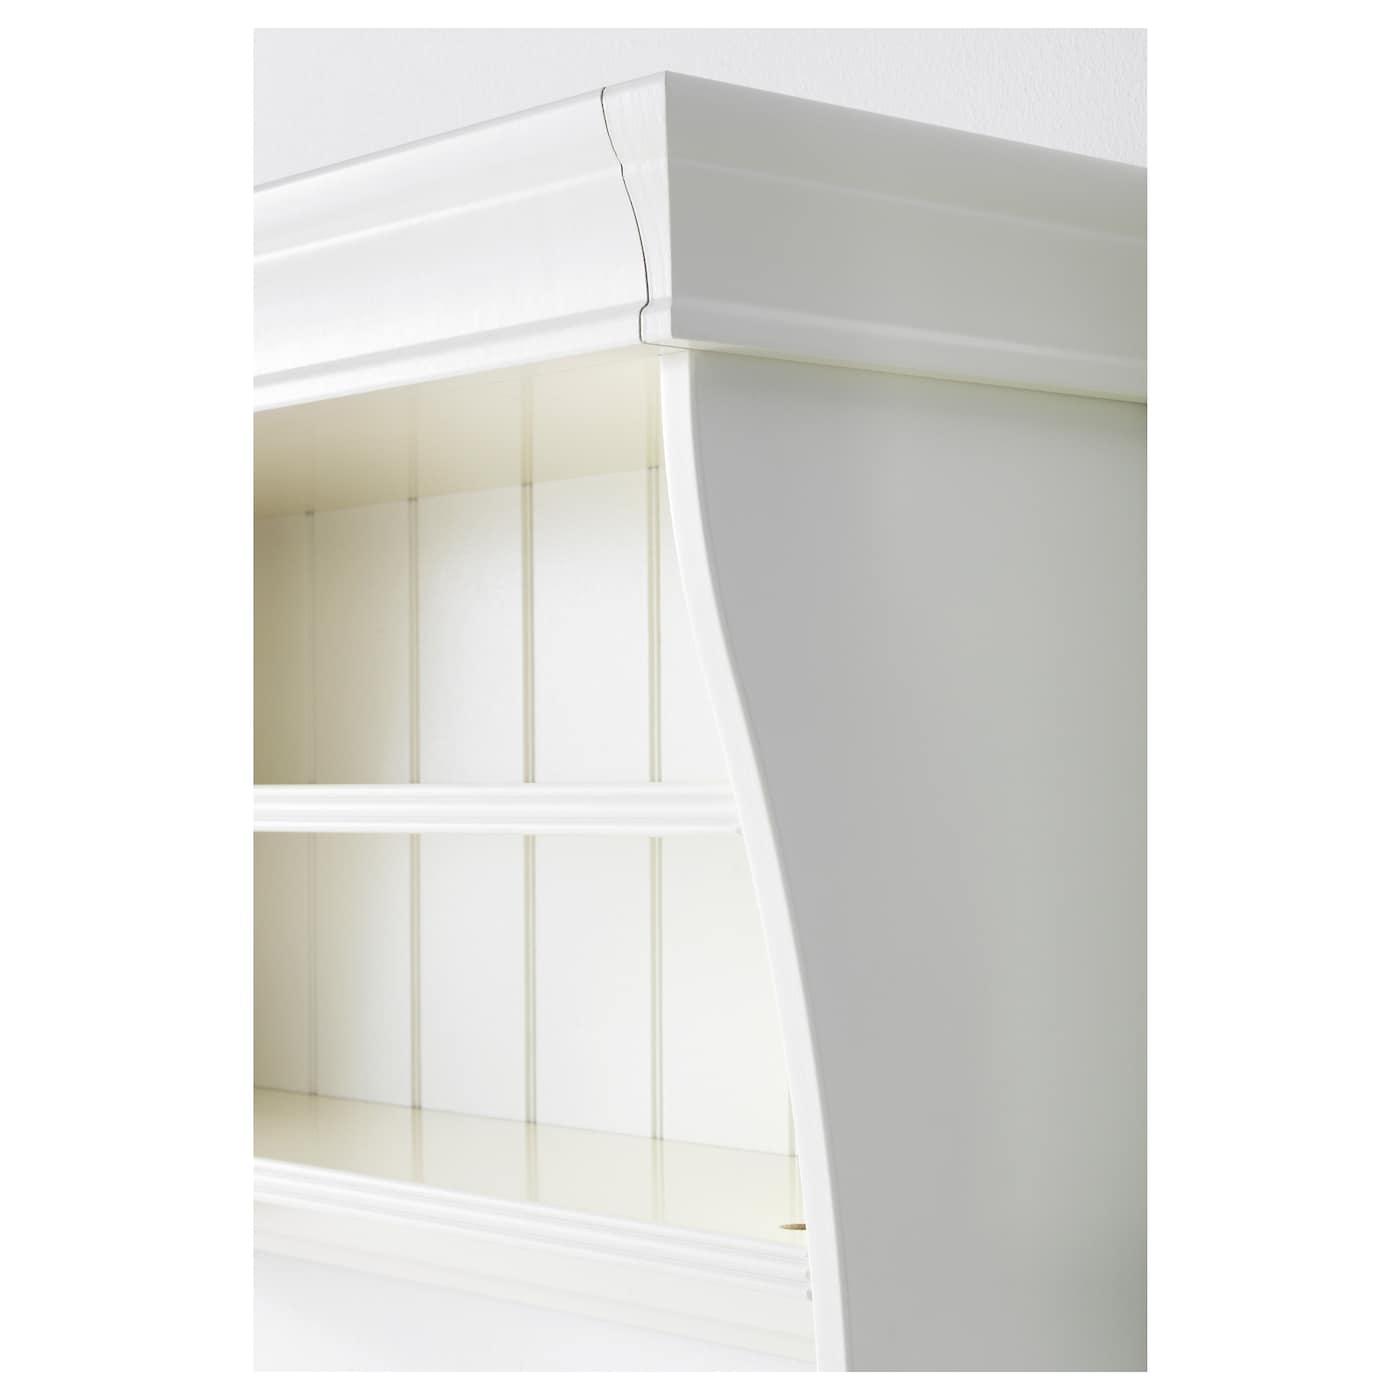 IKEA LIATORP wall/bridging shelf